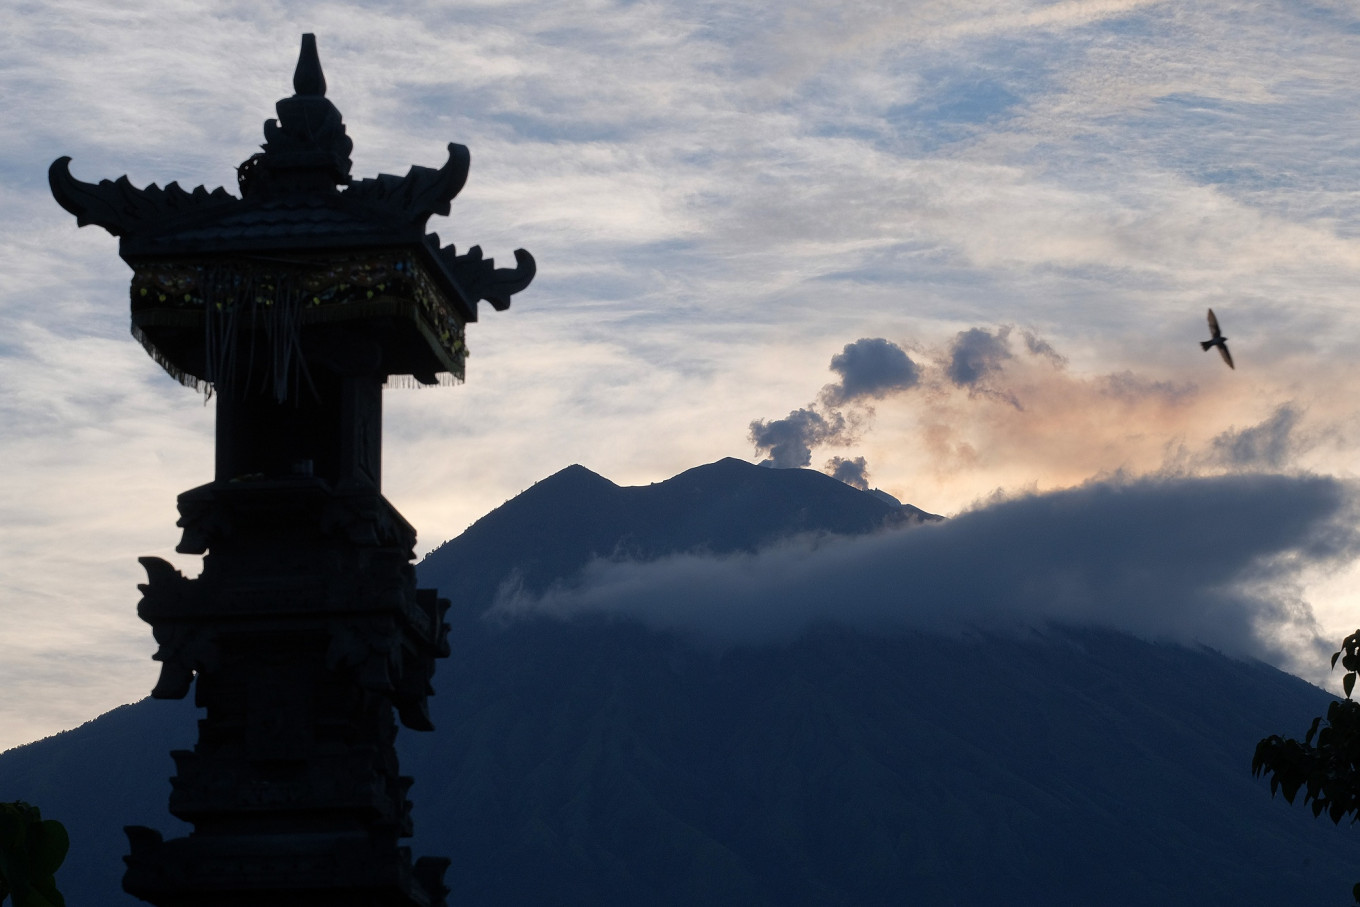 Volcano on Indonesia's Bali resort island erupts again